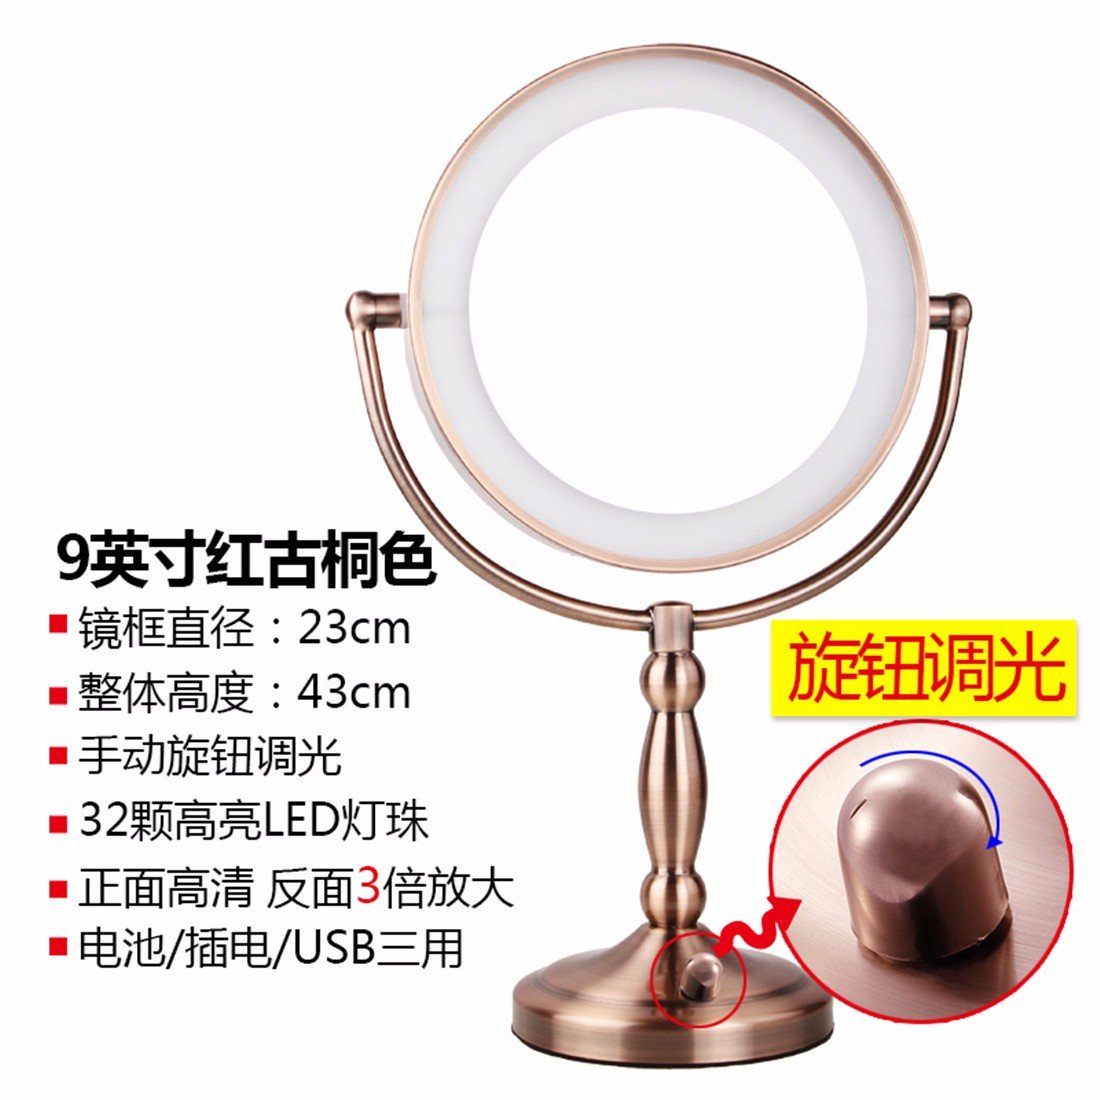 STAZSX Leds make-up mirror desktop continental with light vanity mirror princess beauty mirror creative Tunable Optical mirrors , in red ,9 Bronze (3 x magnification)